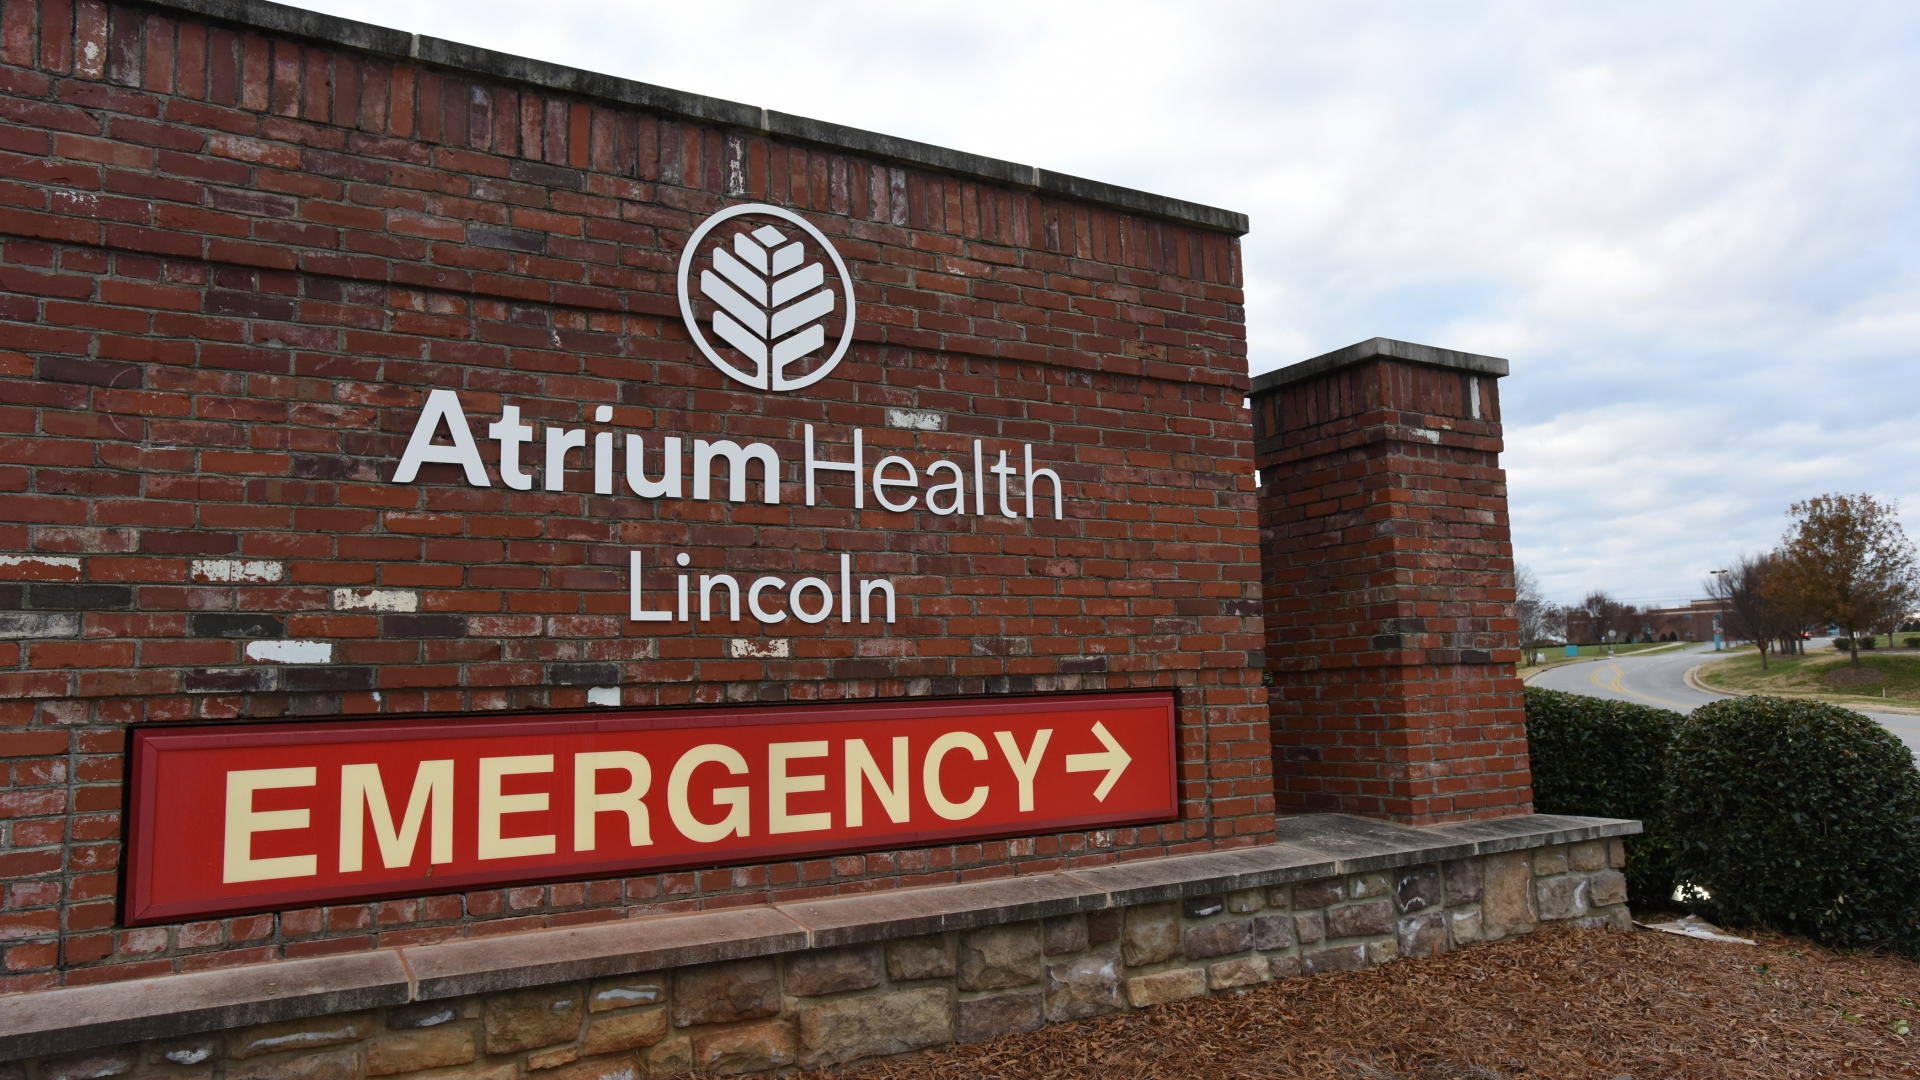 As the healthcare industry continues to increase its attention on security, Atrium Health is furthering its goal of ensuring the safety of each patient, teammate and visitor by implementing enhanced security measures across its system. Most recently, Atrium Health Lincoln began implementing enhanced security measures in its Emergency Department.